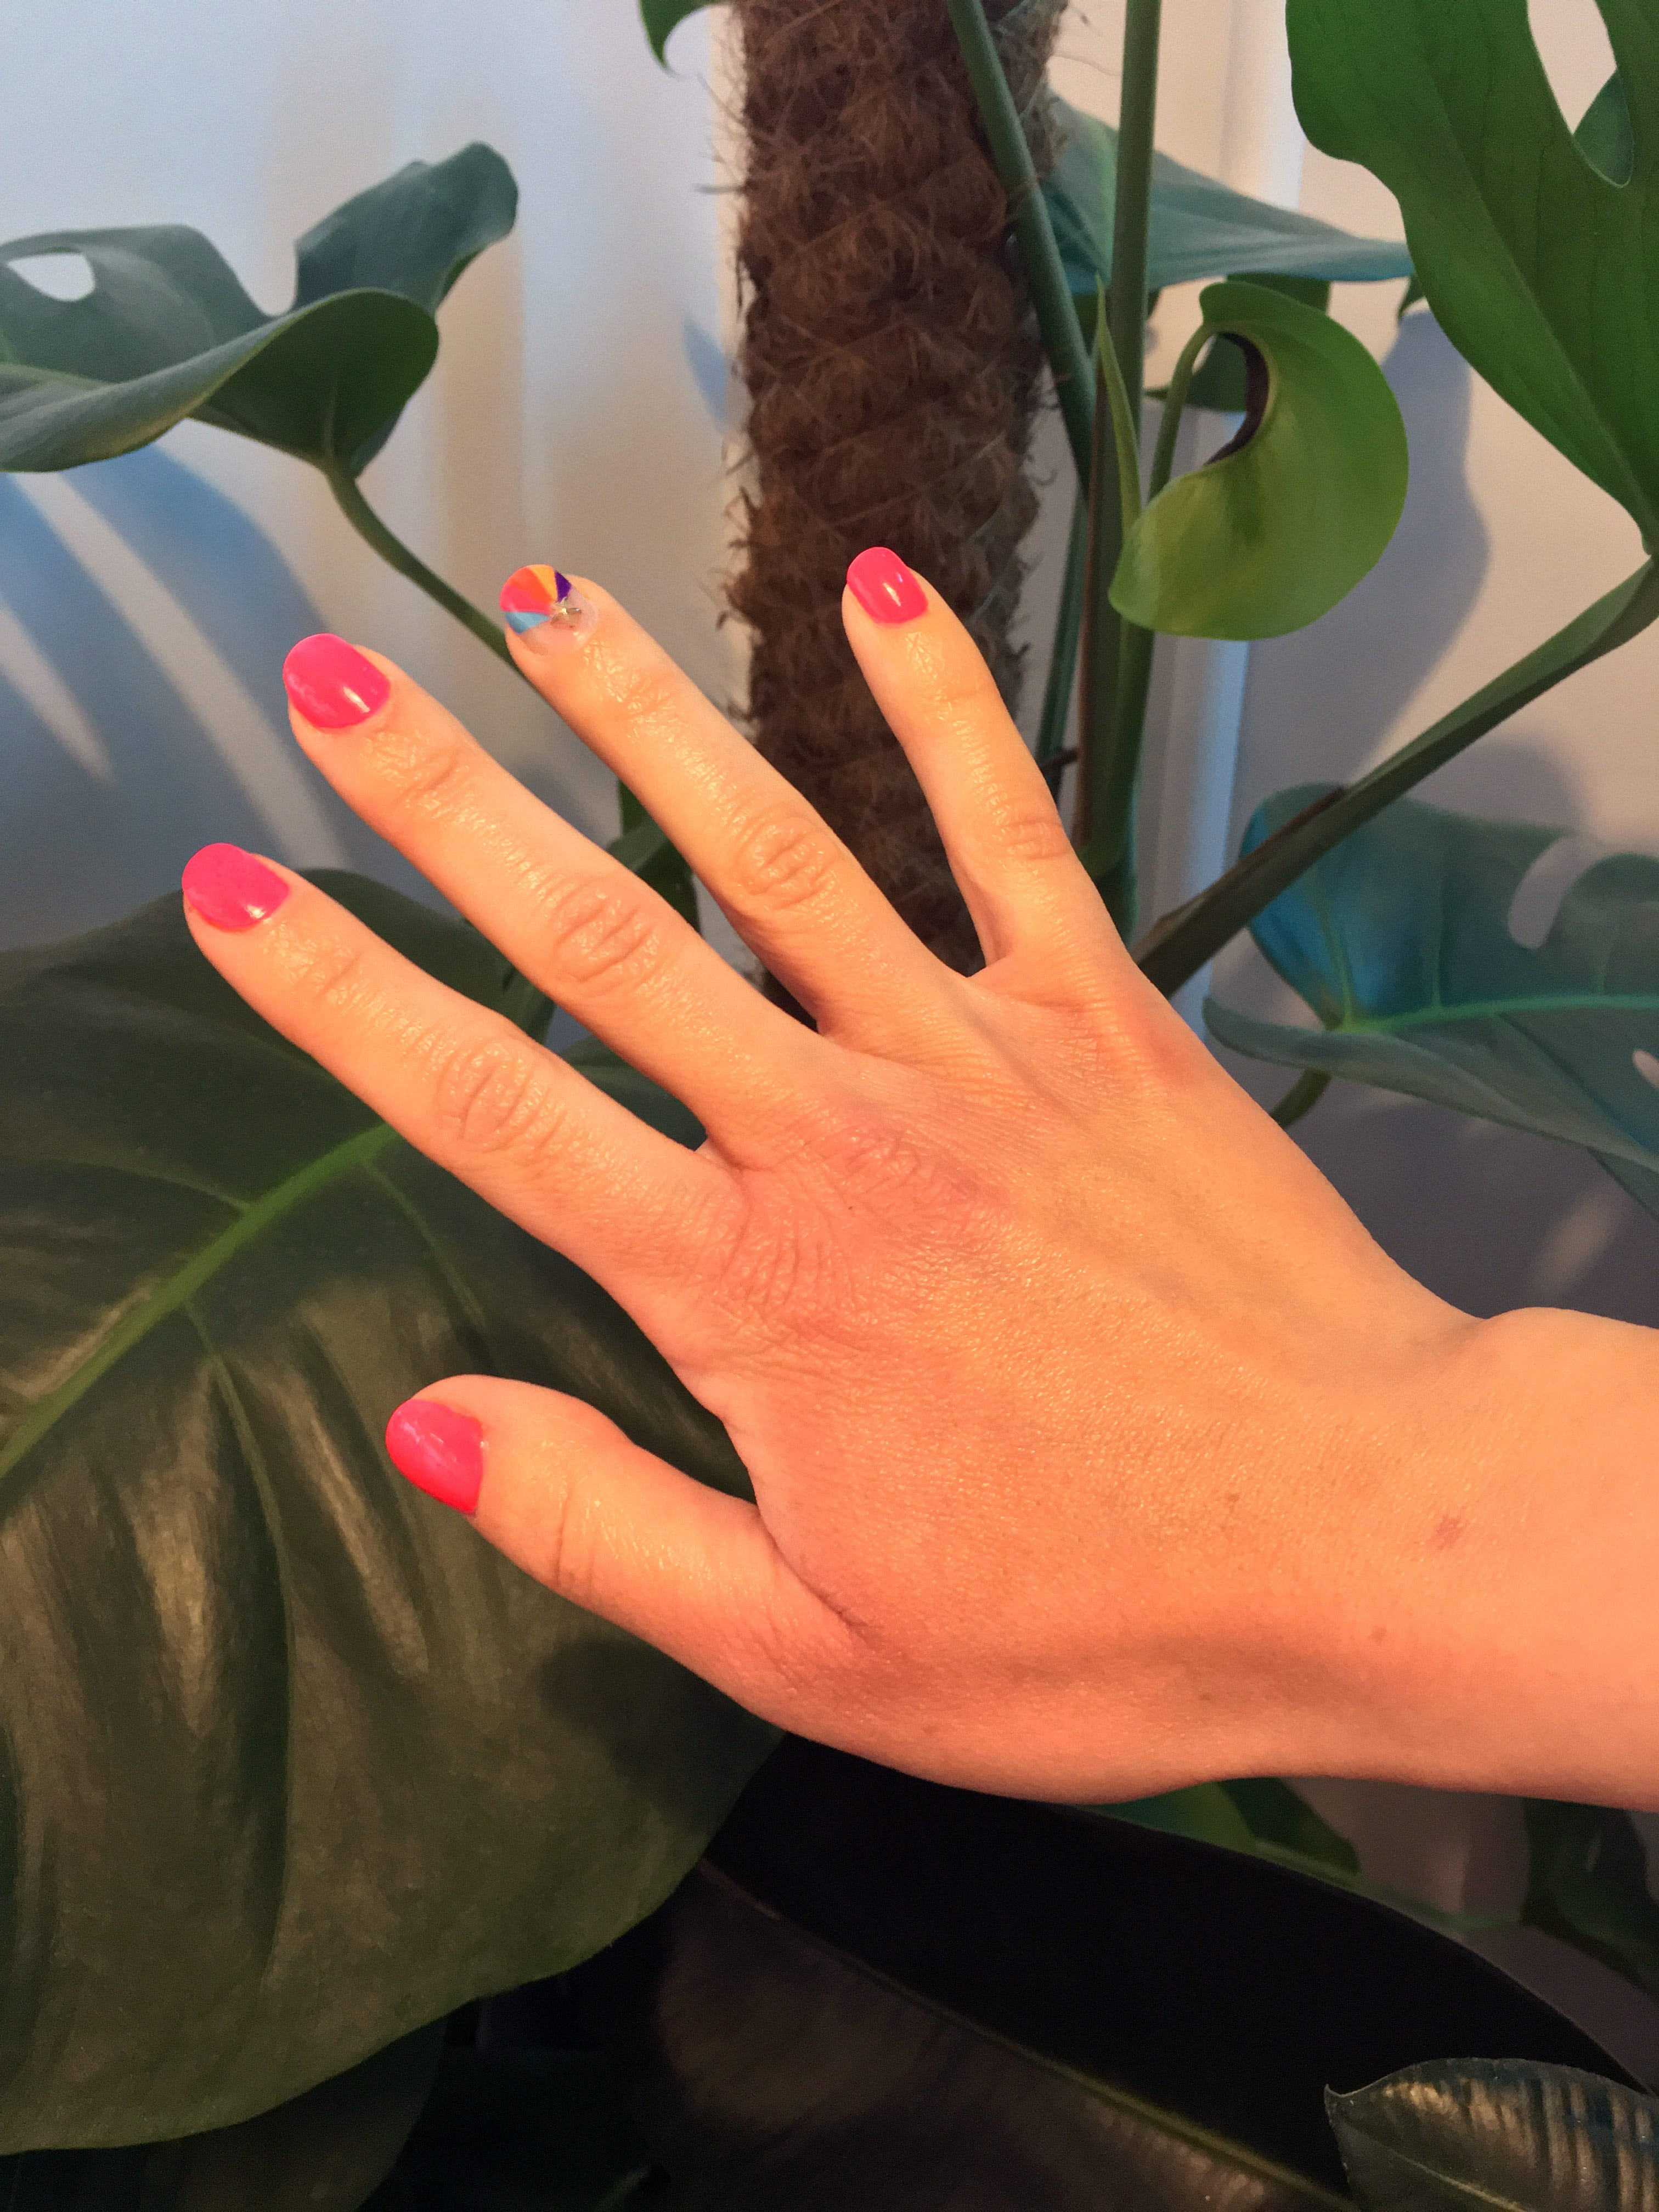 I Spent An Hour With Beyoncé's Nail Artist & Learned So Much